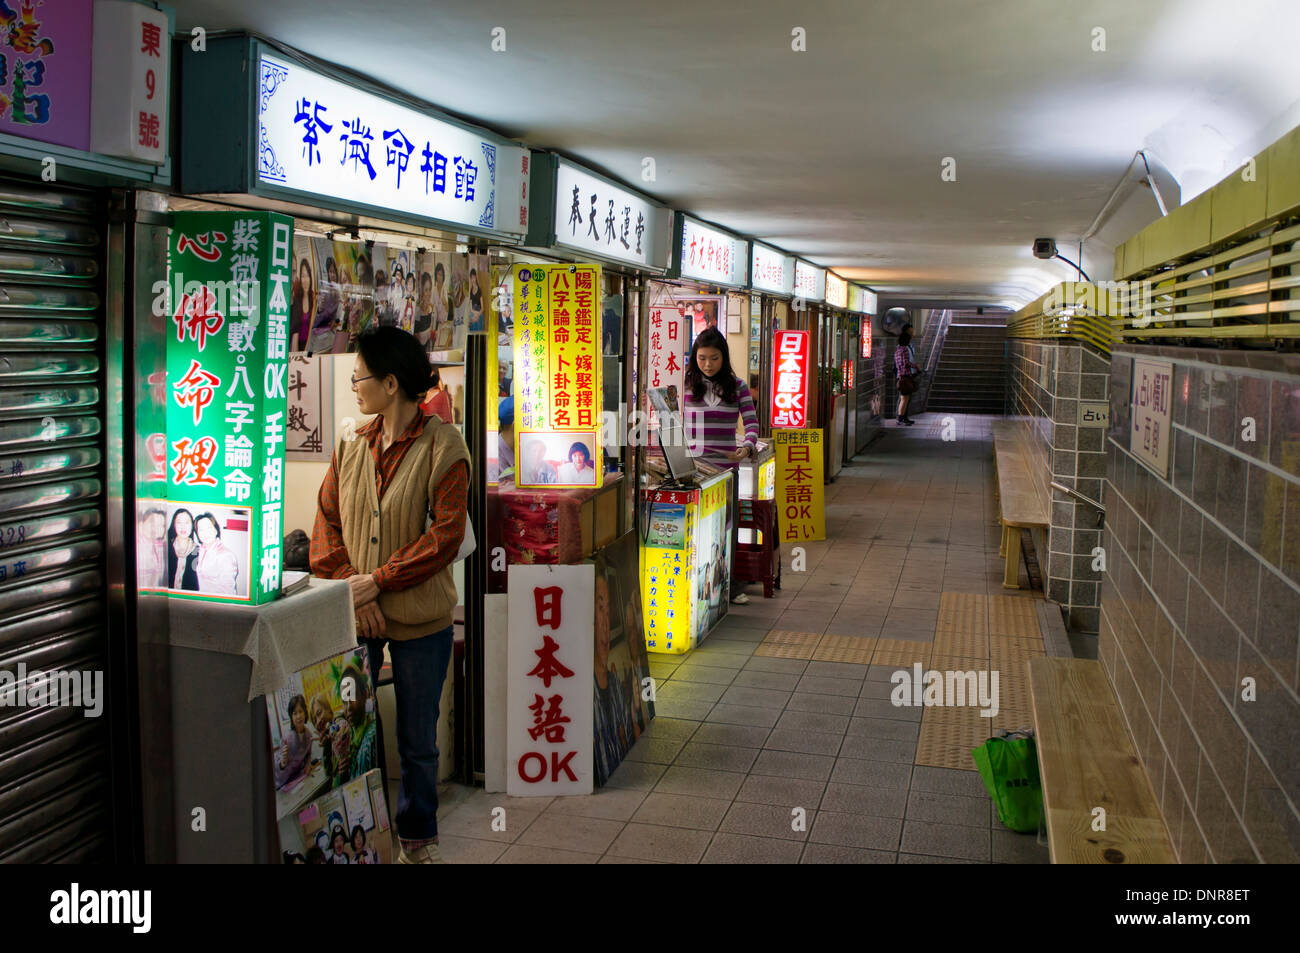 Line of Fortune-telling Rooms in Underground Passage, Taipei, Taiwan - Stock Image